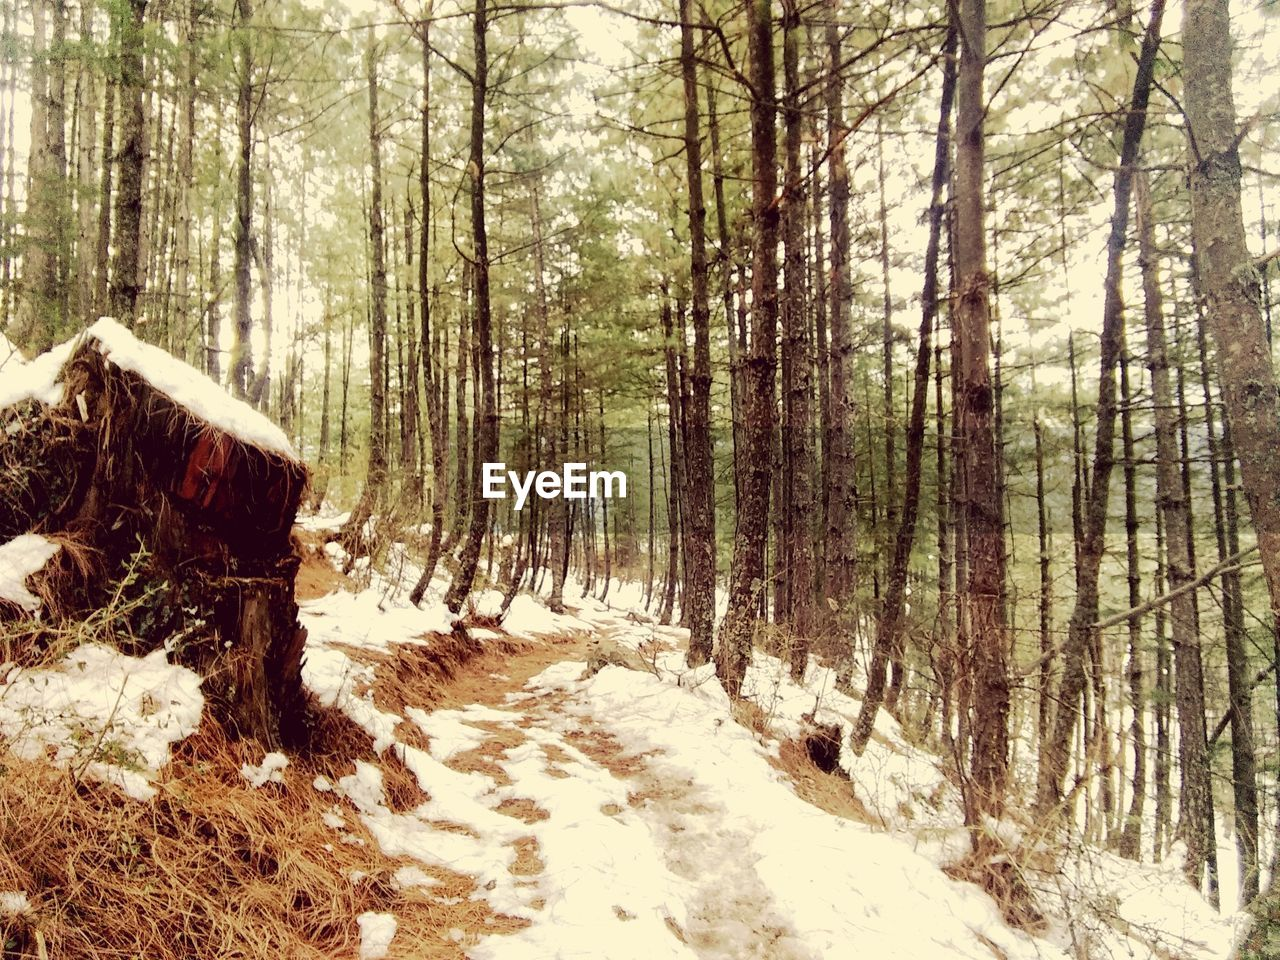 snow, winter, forest, tree, nature, cold temperature, tree trunk, day, no people, tranquility, beauty in nature, outdoors, scenics, landscape